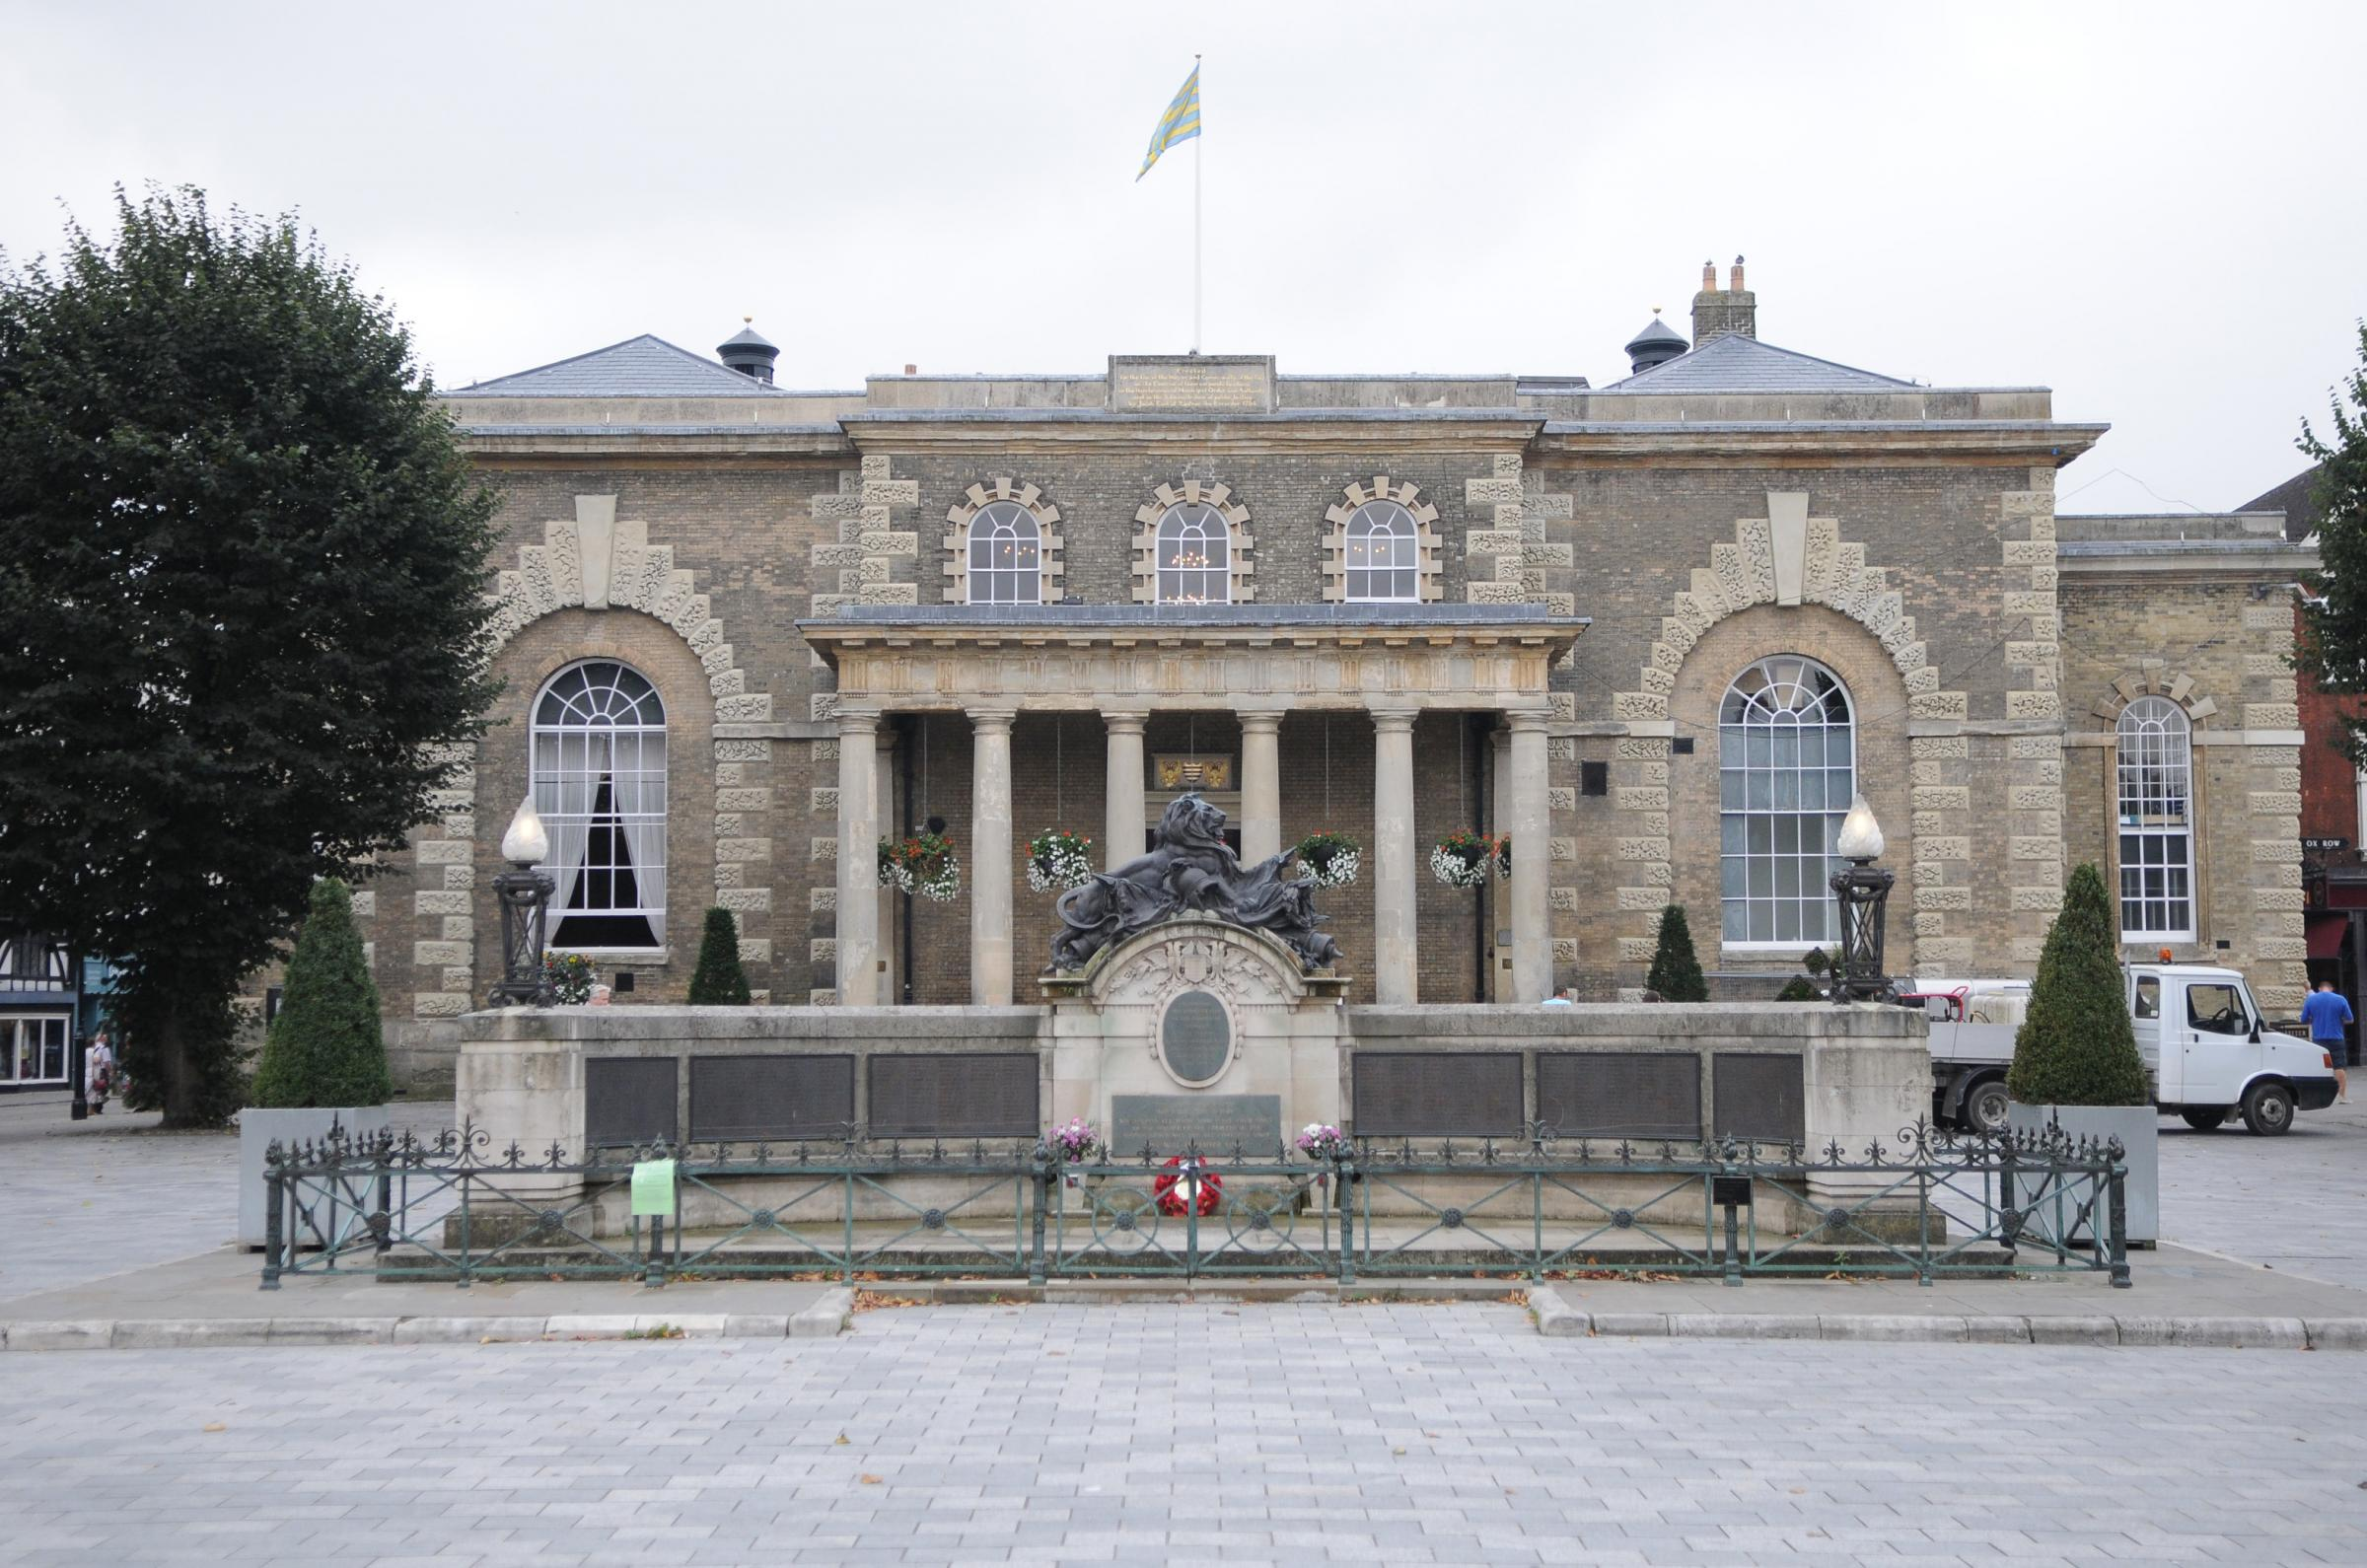 Salisbury Guildhall, where city council meetings are held